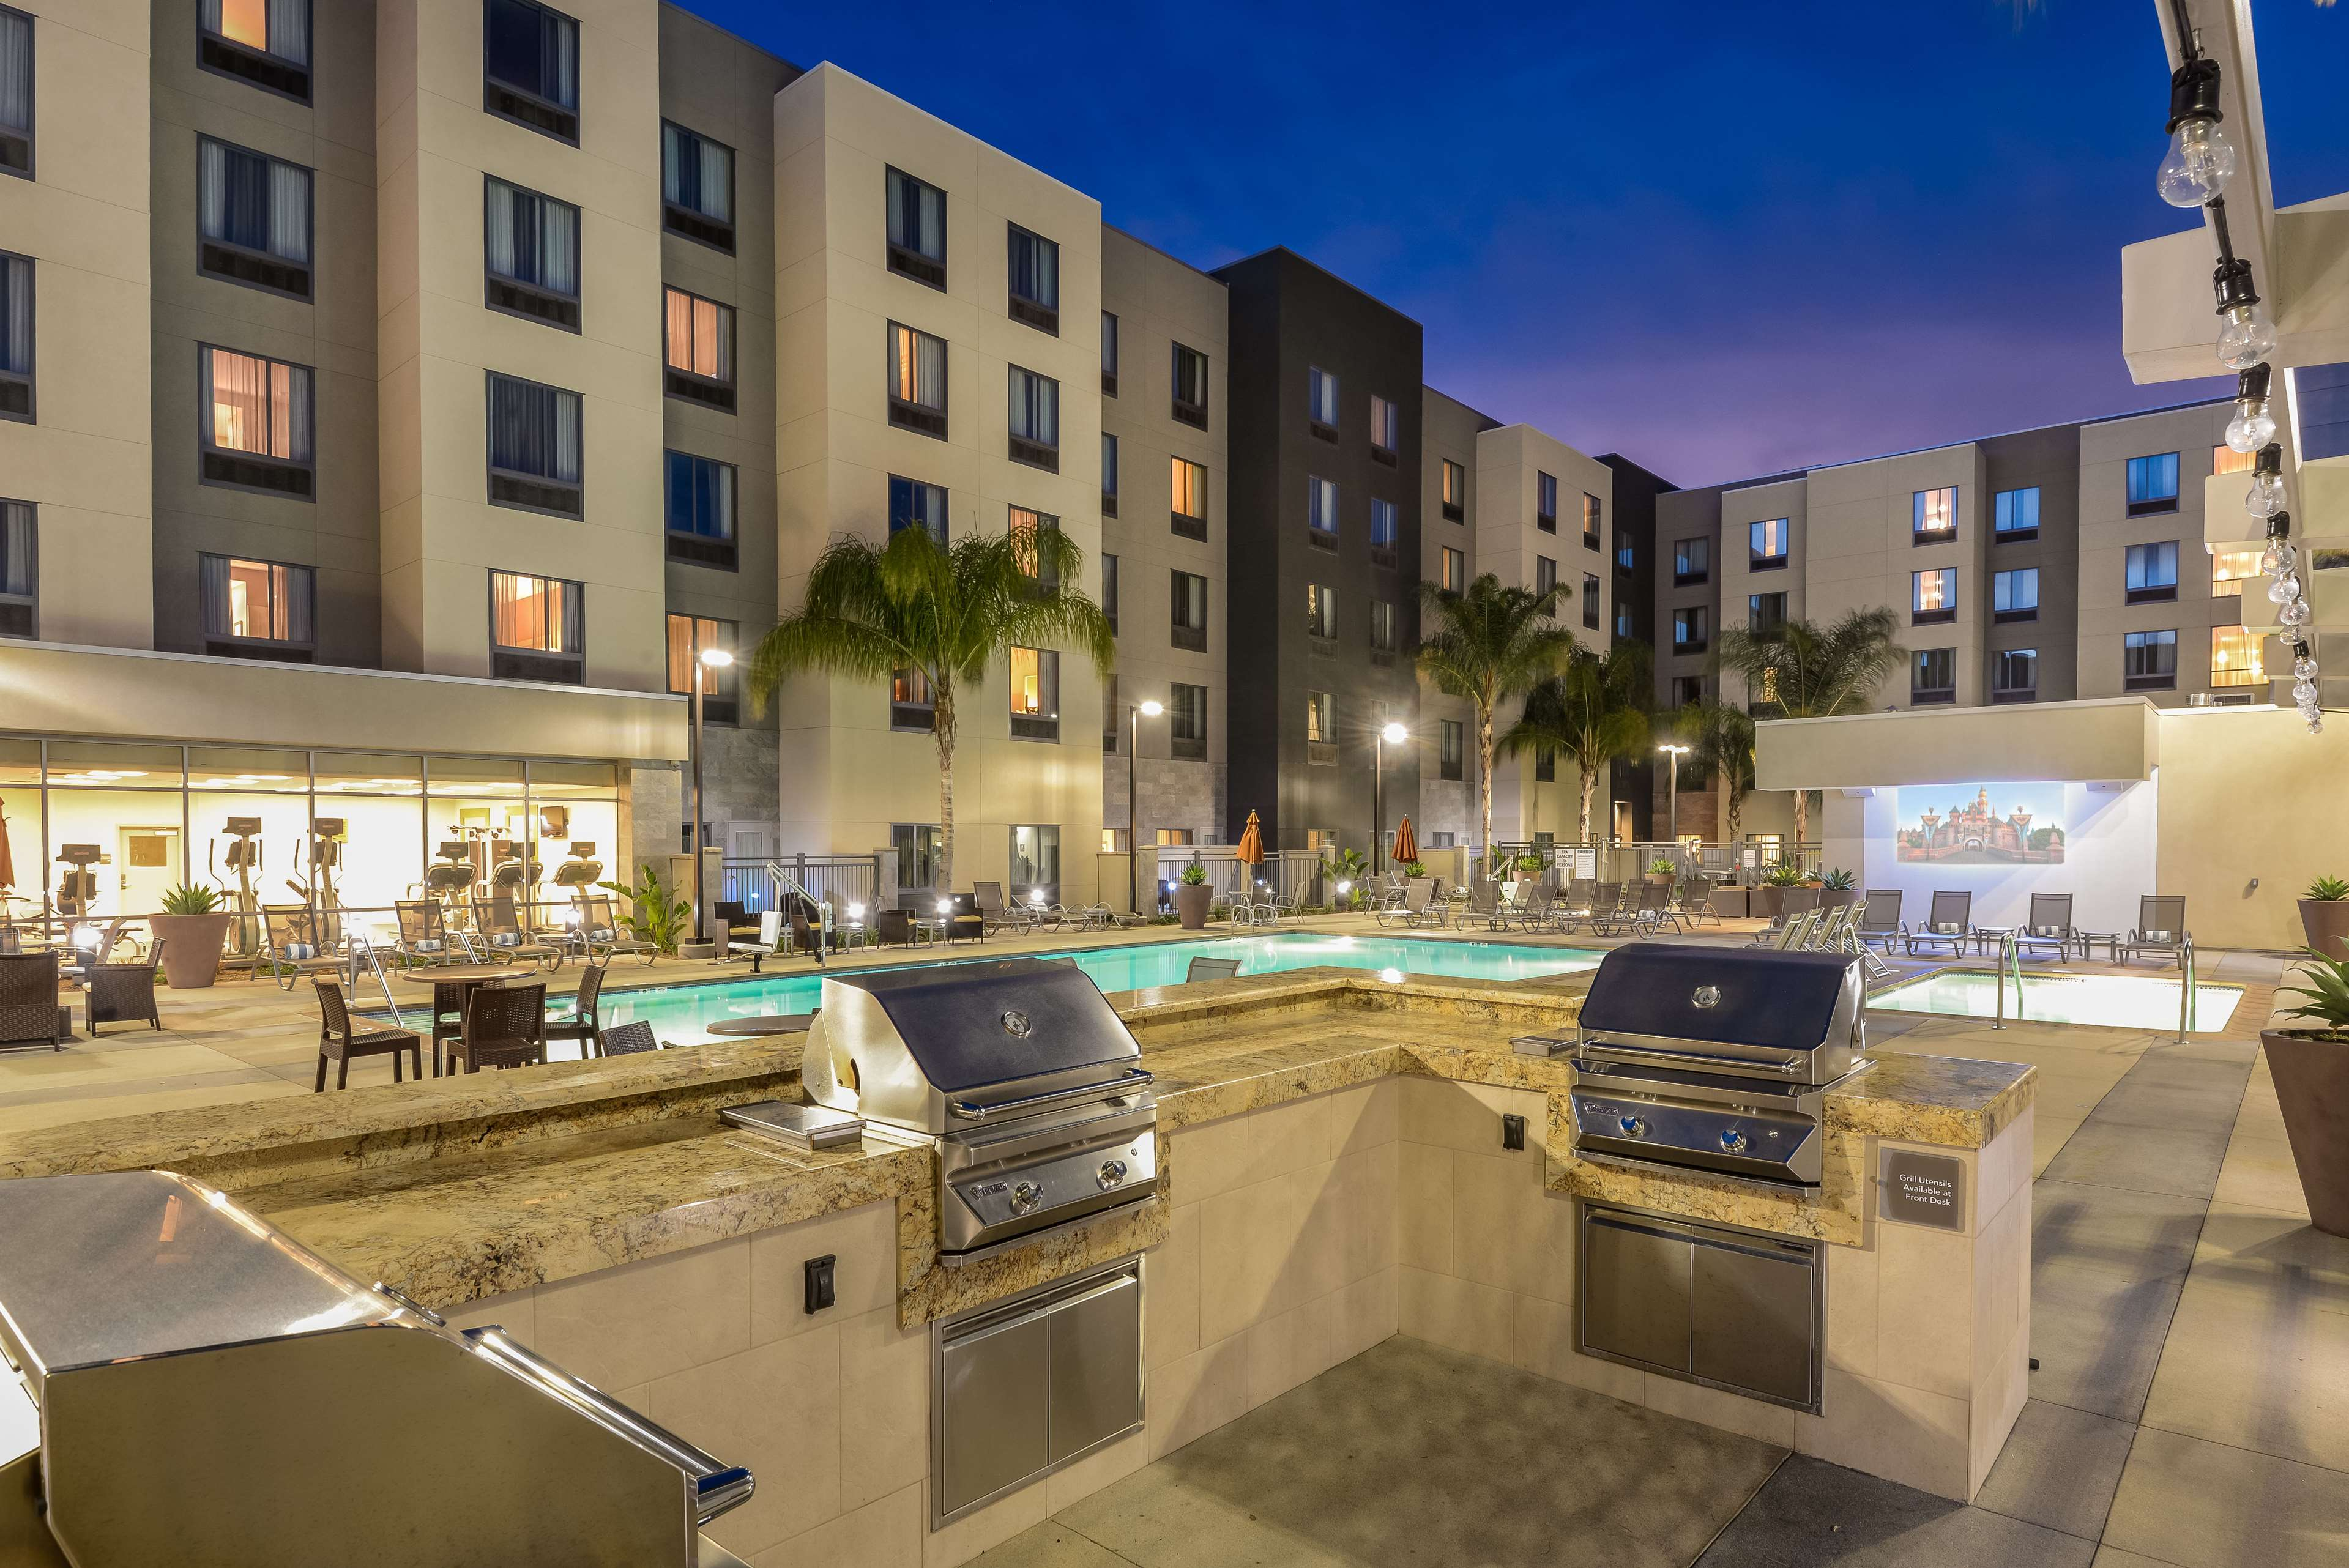 Homewood Suites by Hilton Anaheim Resort - Convention Center image 3